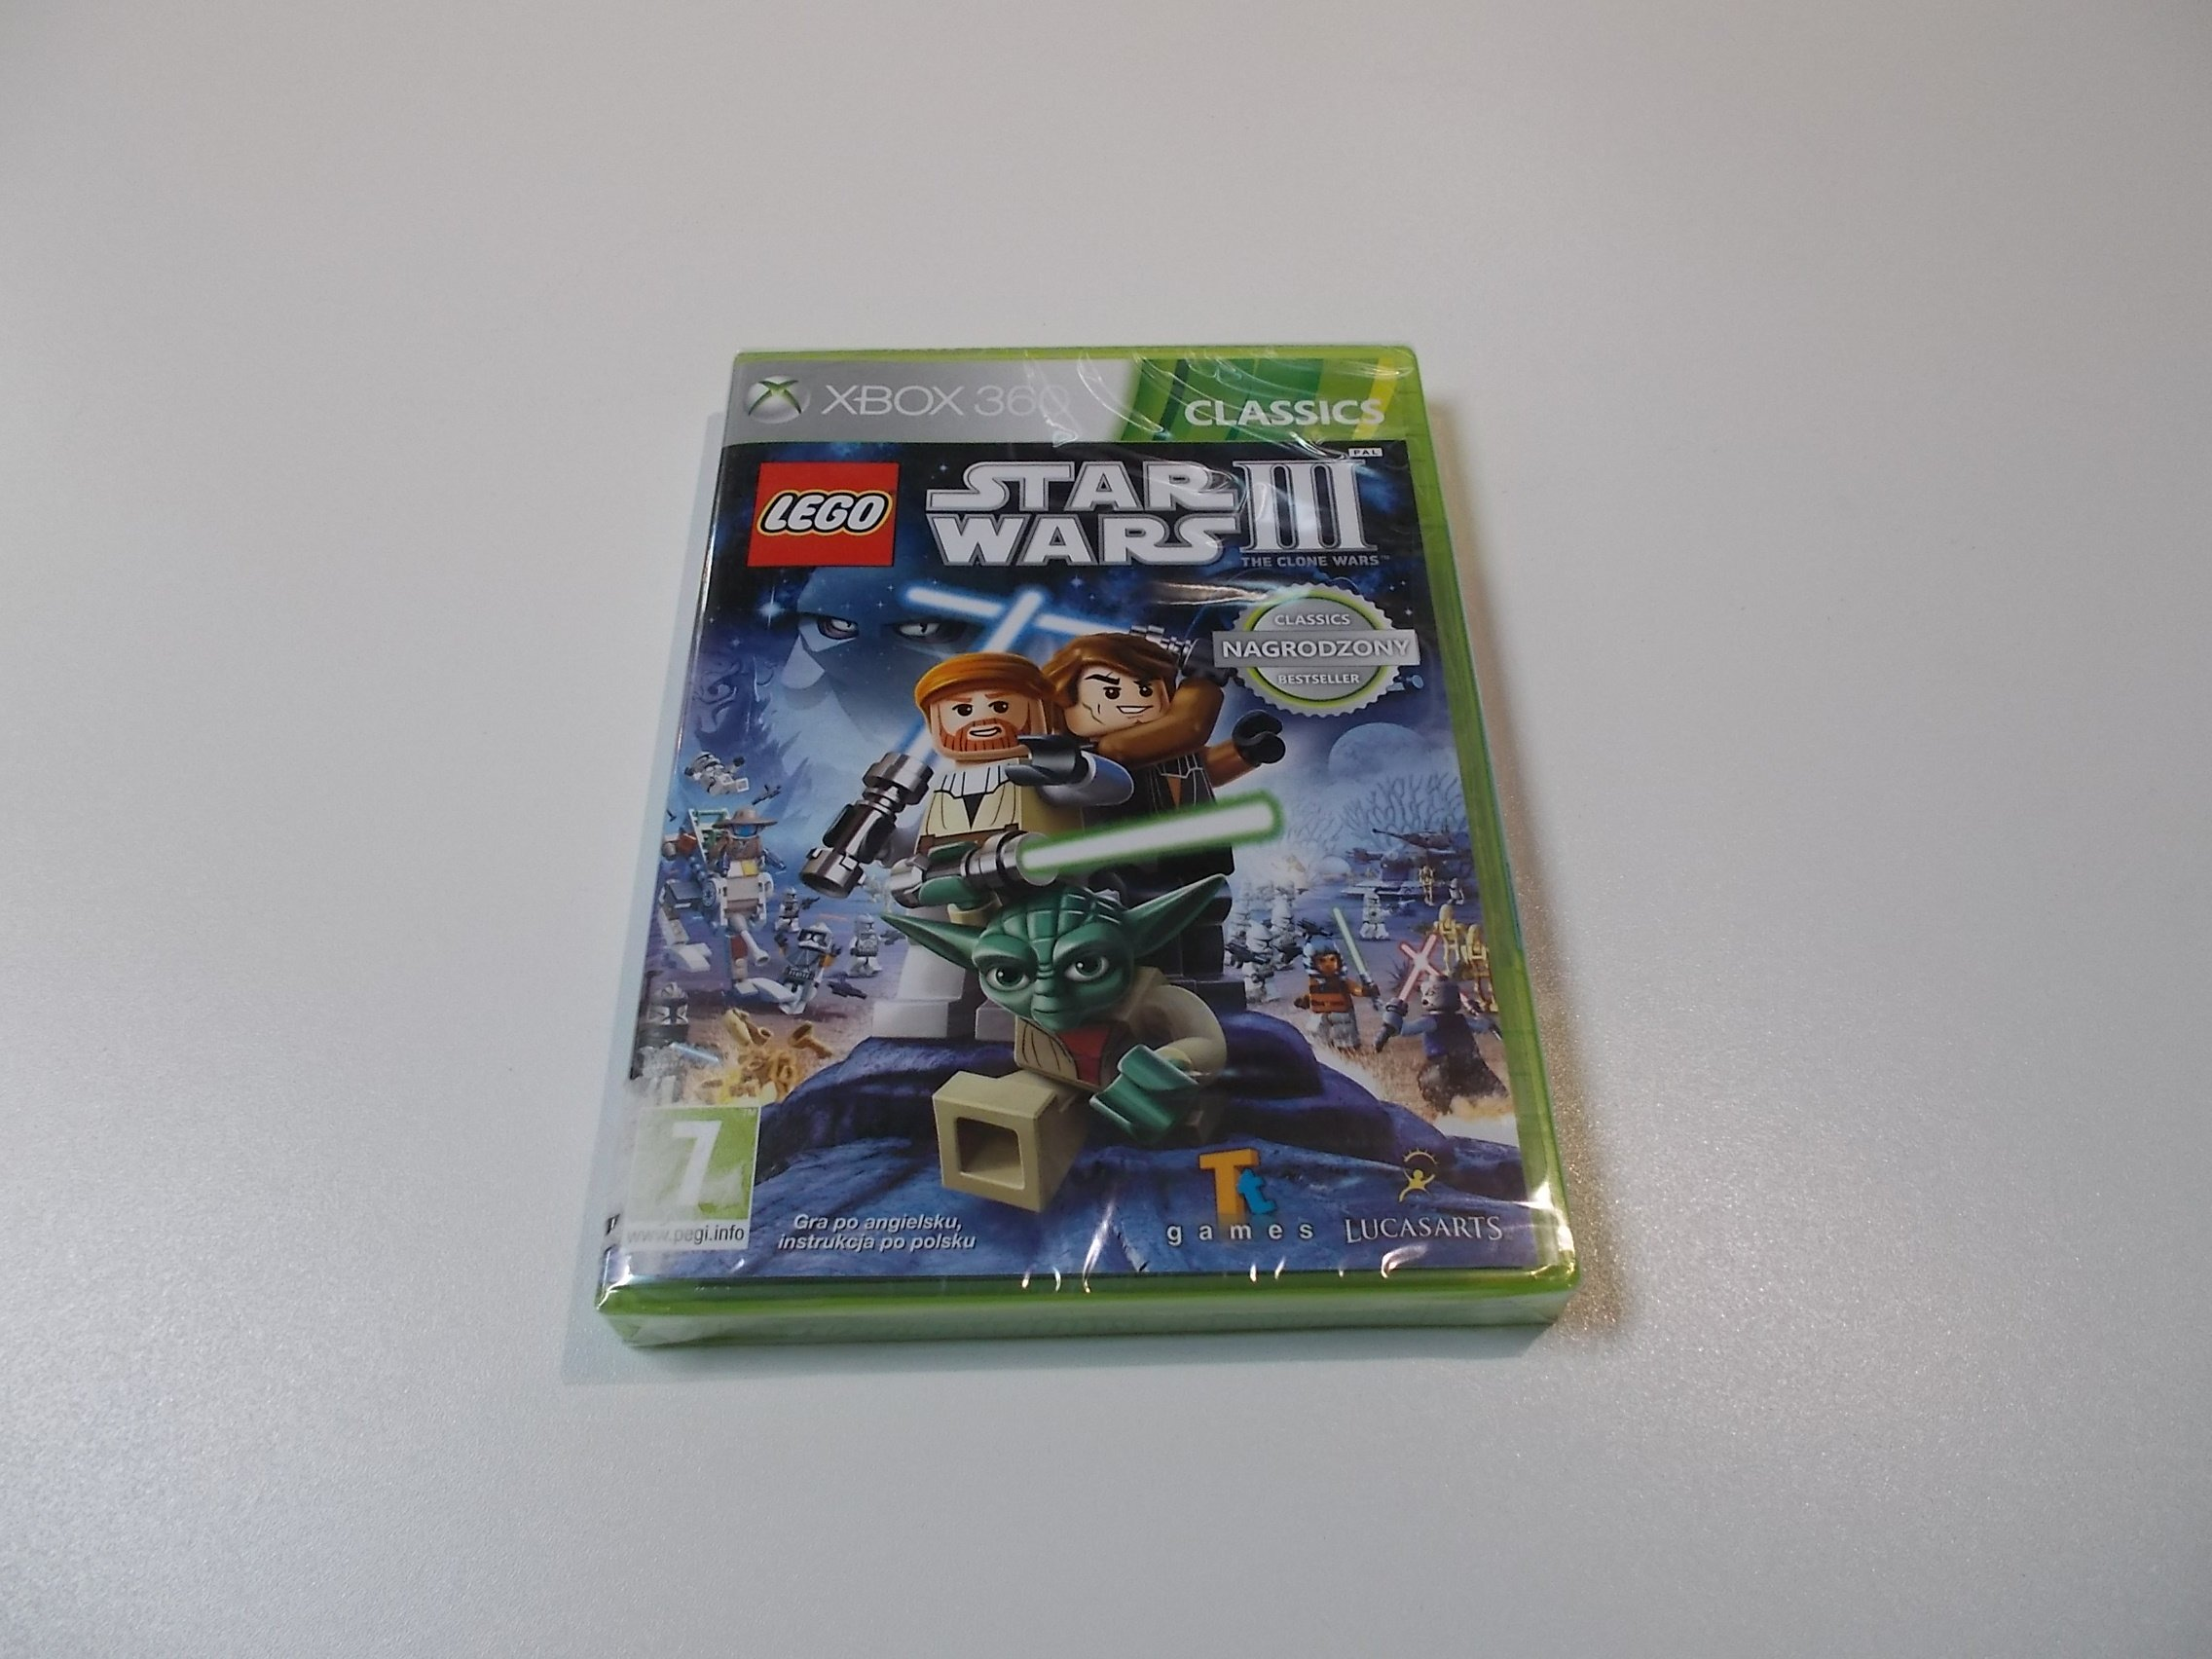 LEGO Star Wars III 3 the clone wars - GRA Xbox 360 - Sklep